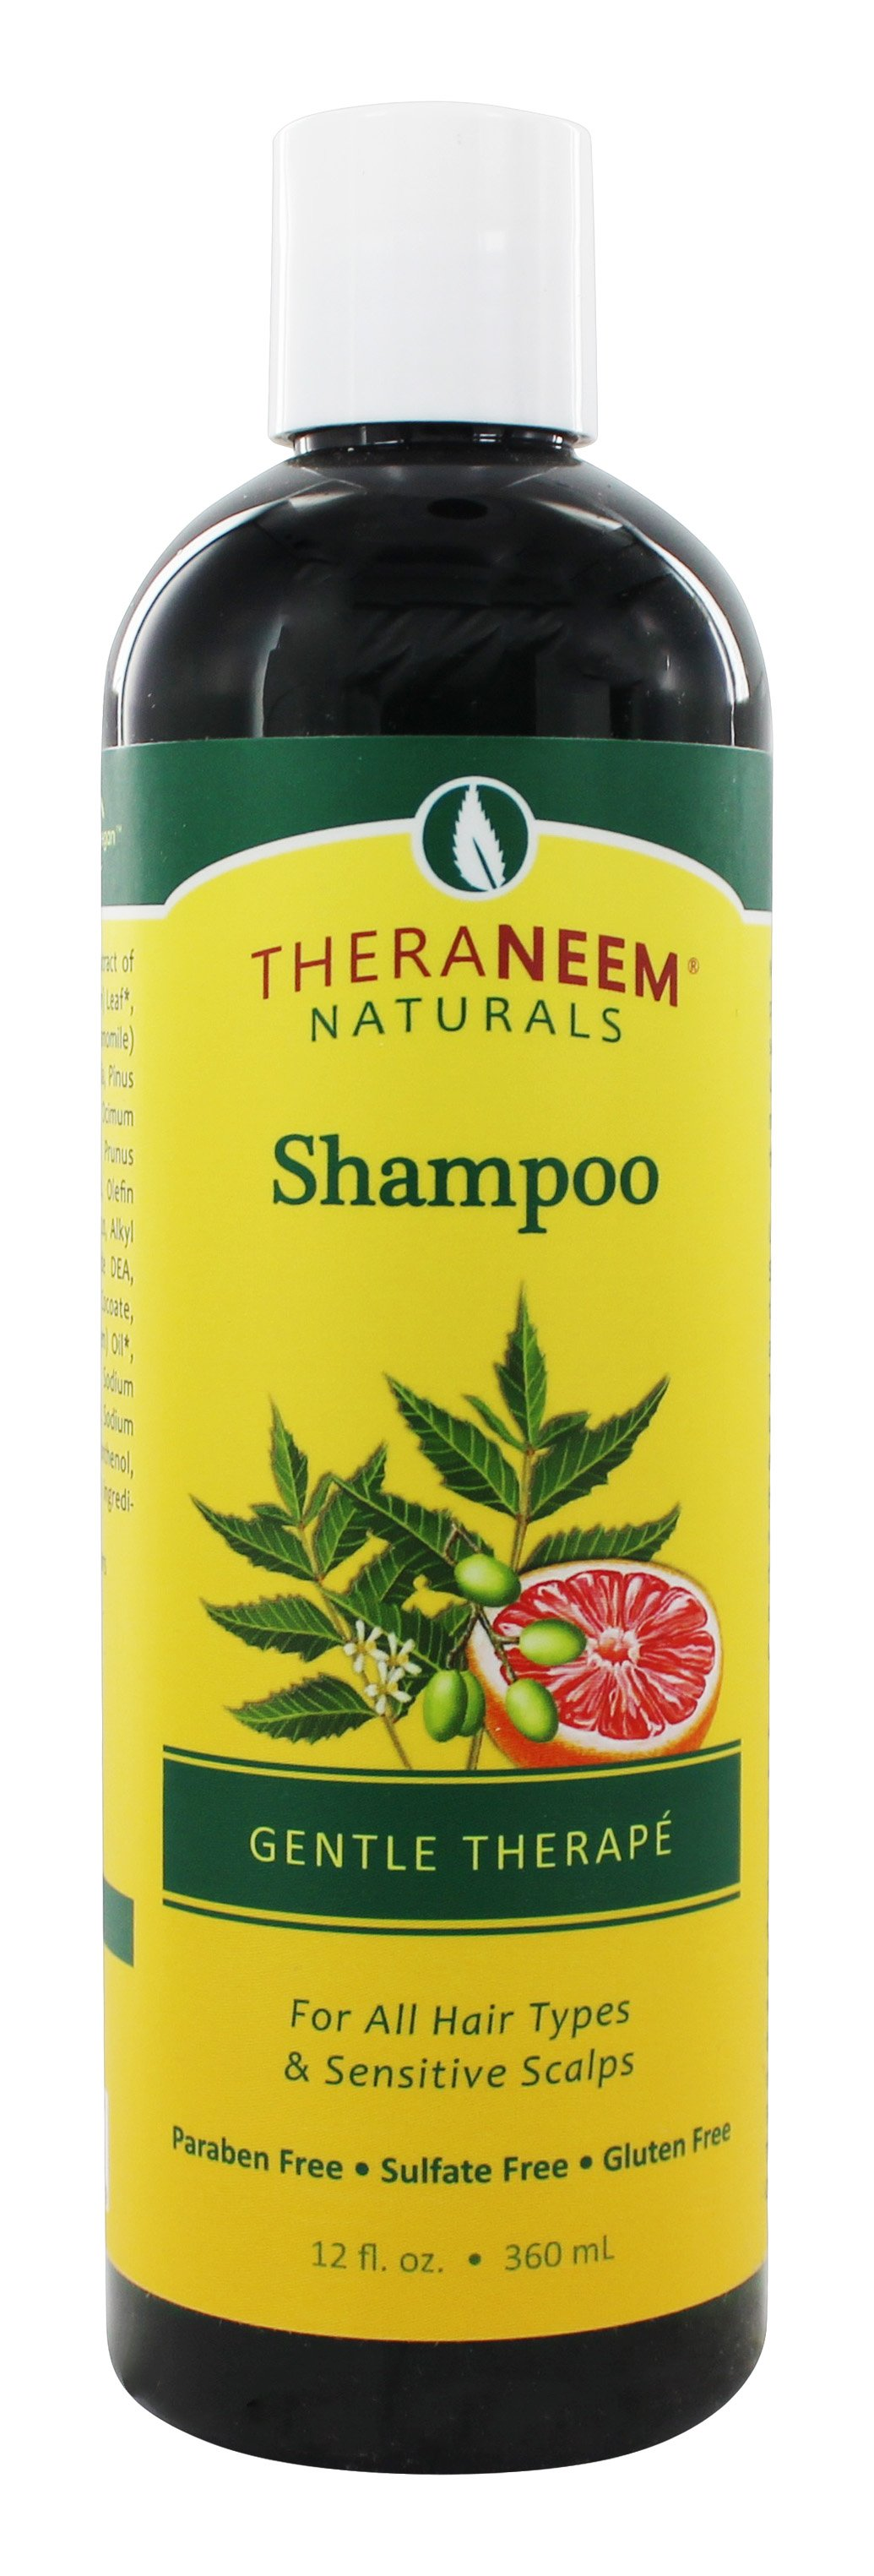 Organix South - TheraNeem Organix Shampoo Gentle Therape - 12 oz. - $9.49